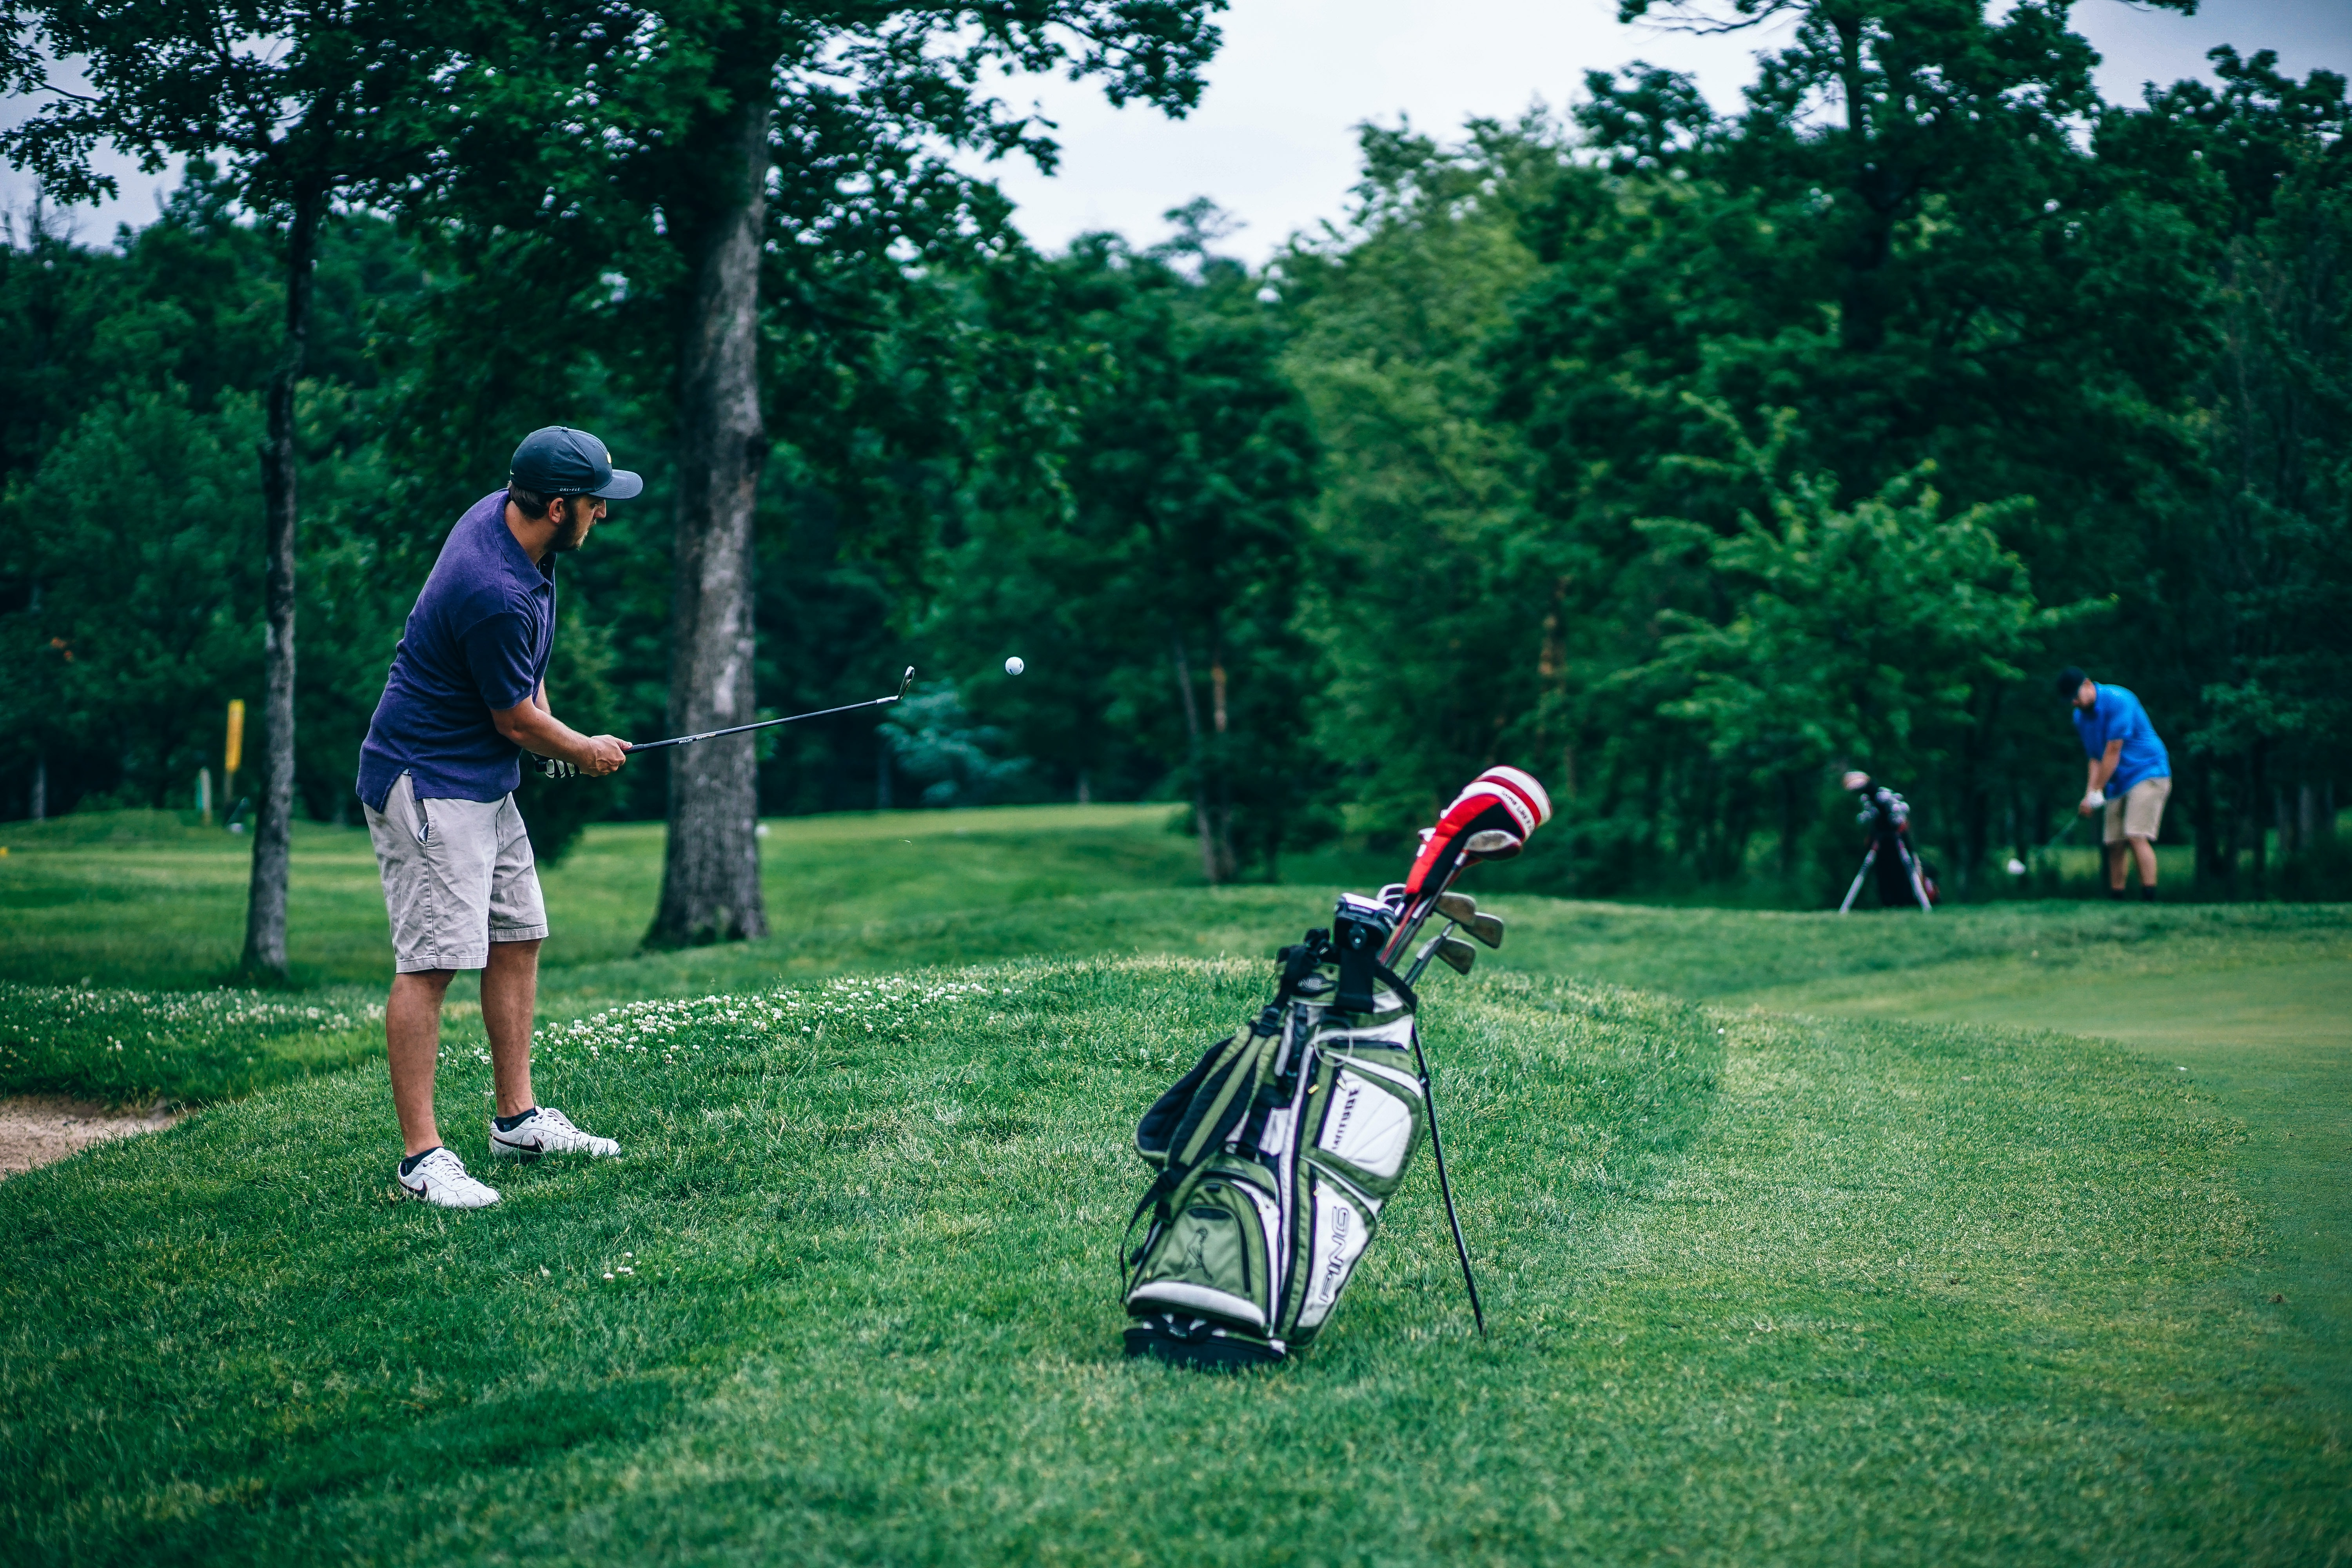 Two men play golf. One has just hit a ball and is watching its trajectory